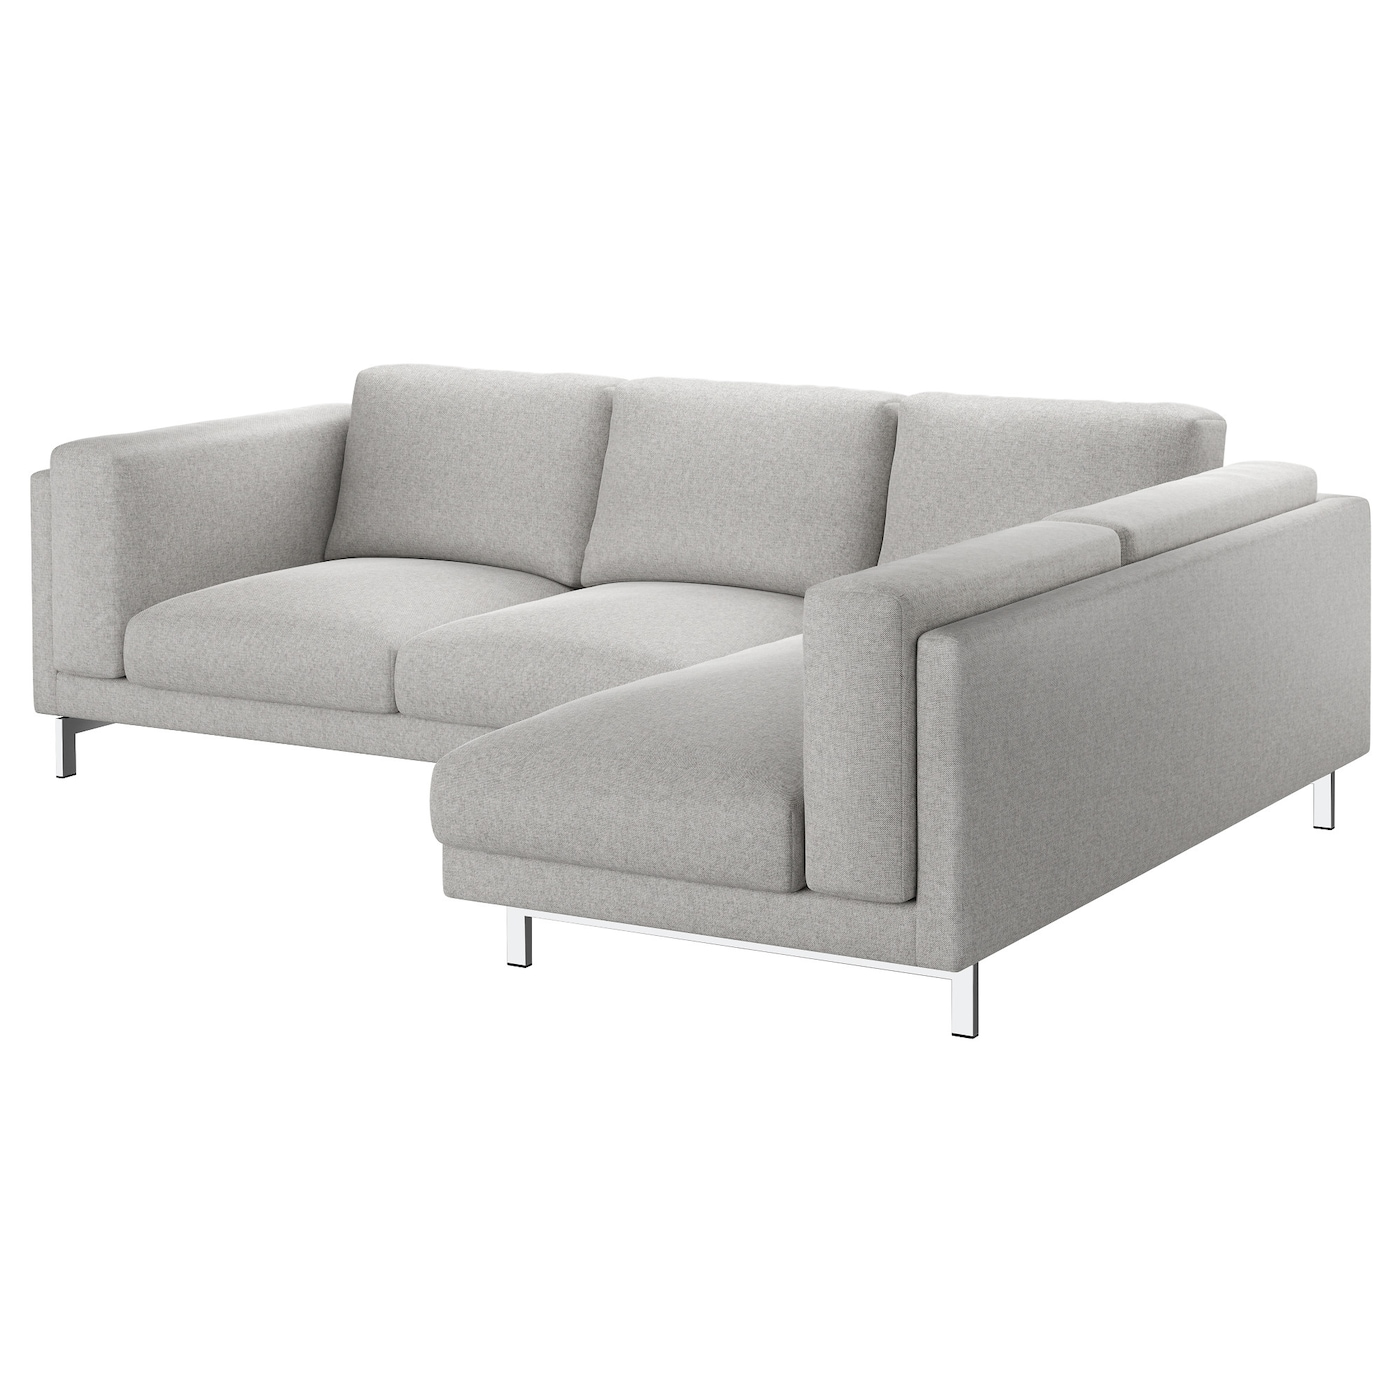 IKEA NOCKEBY 3 Seat Sofa 10 Year Guarantee. Read About The Terms In The